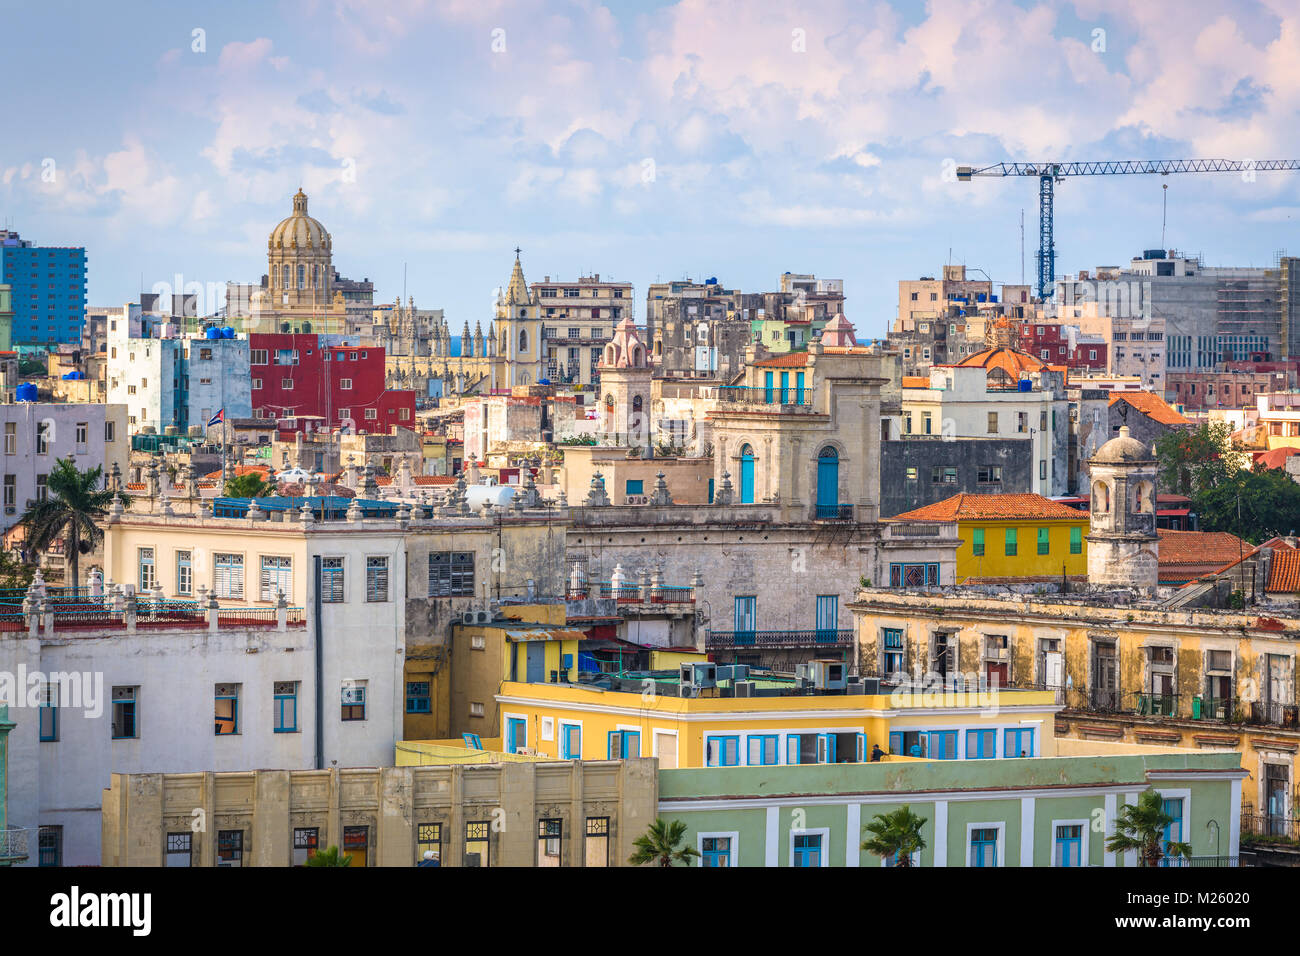 Havanna, Kuba Downtown Skyline. Stockbild